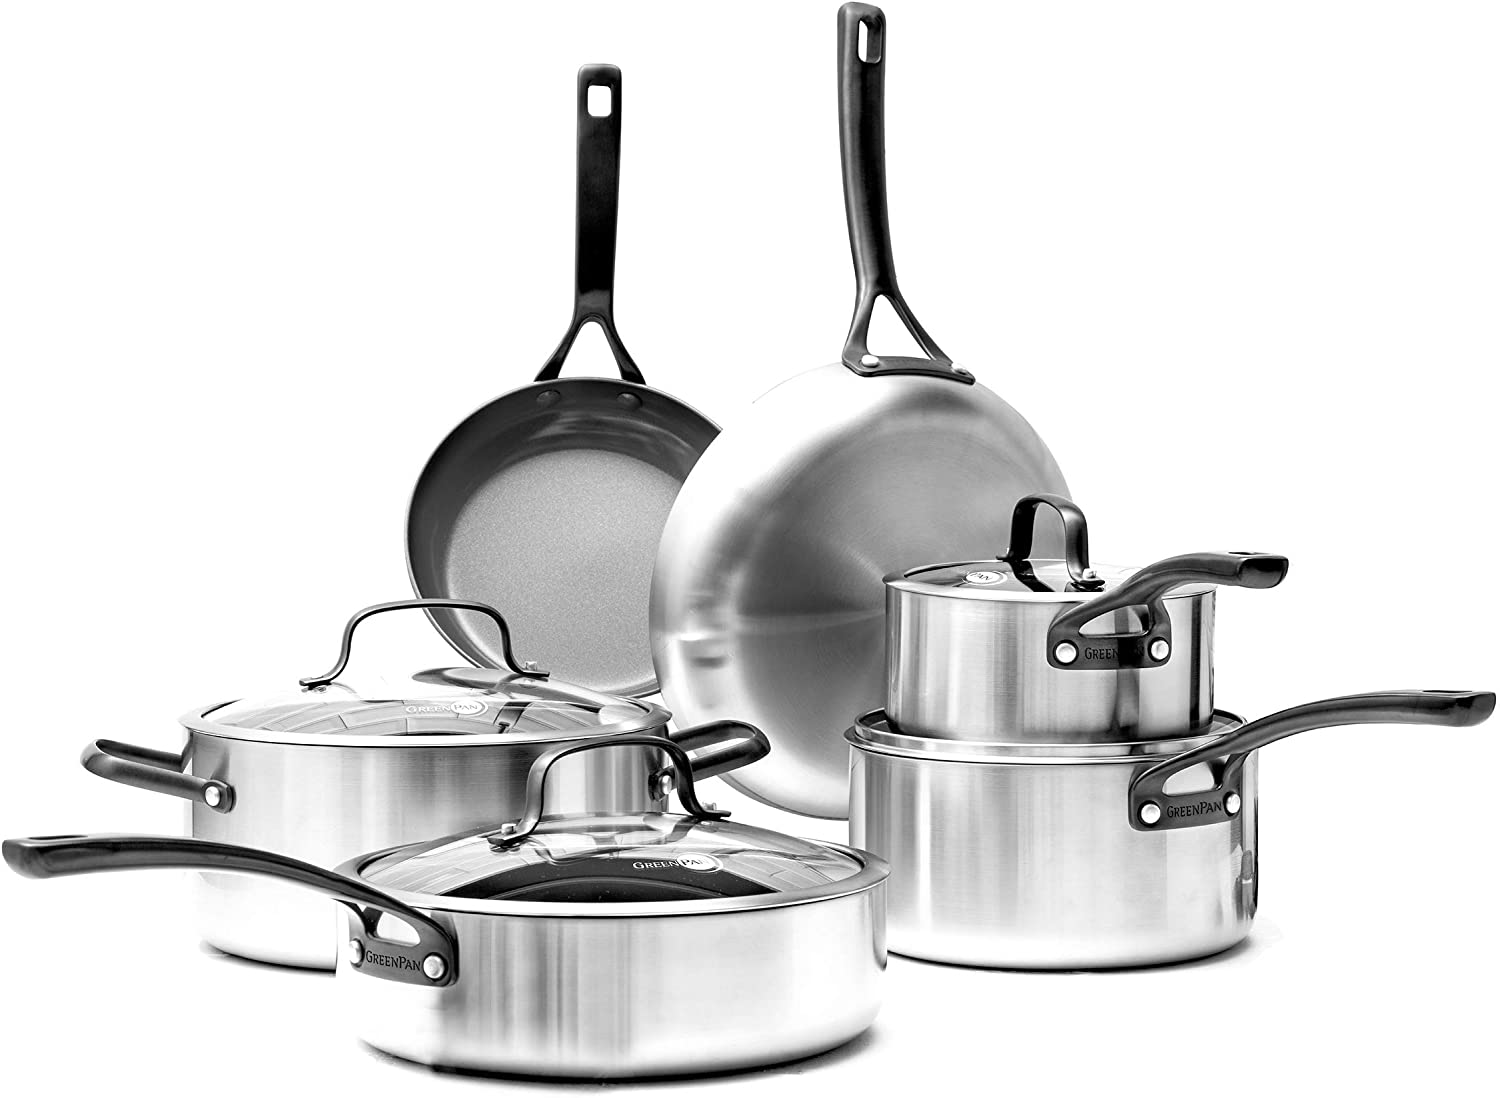 GreenPan Napa Stainless Steel Ceramic Nonstick, Cookware Pots and Pans Set, 10-Piece, Gray